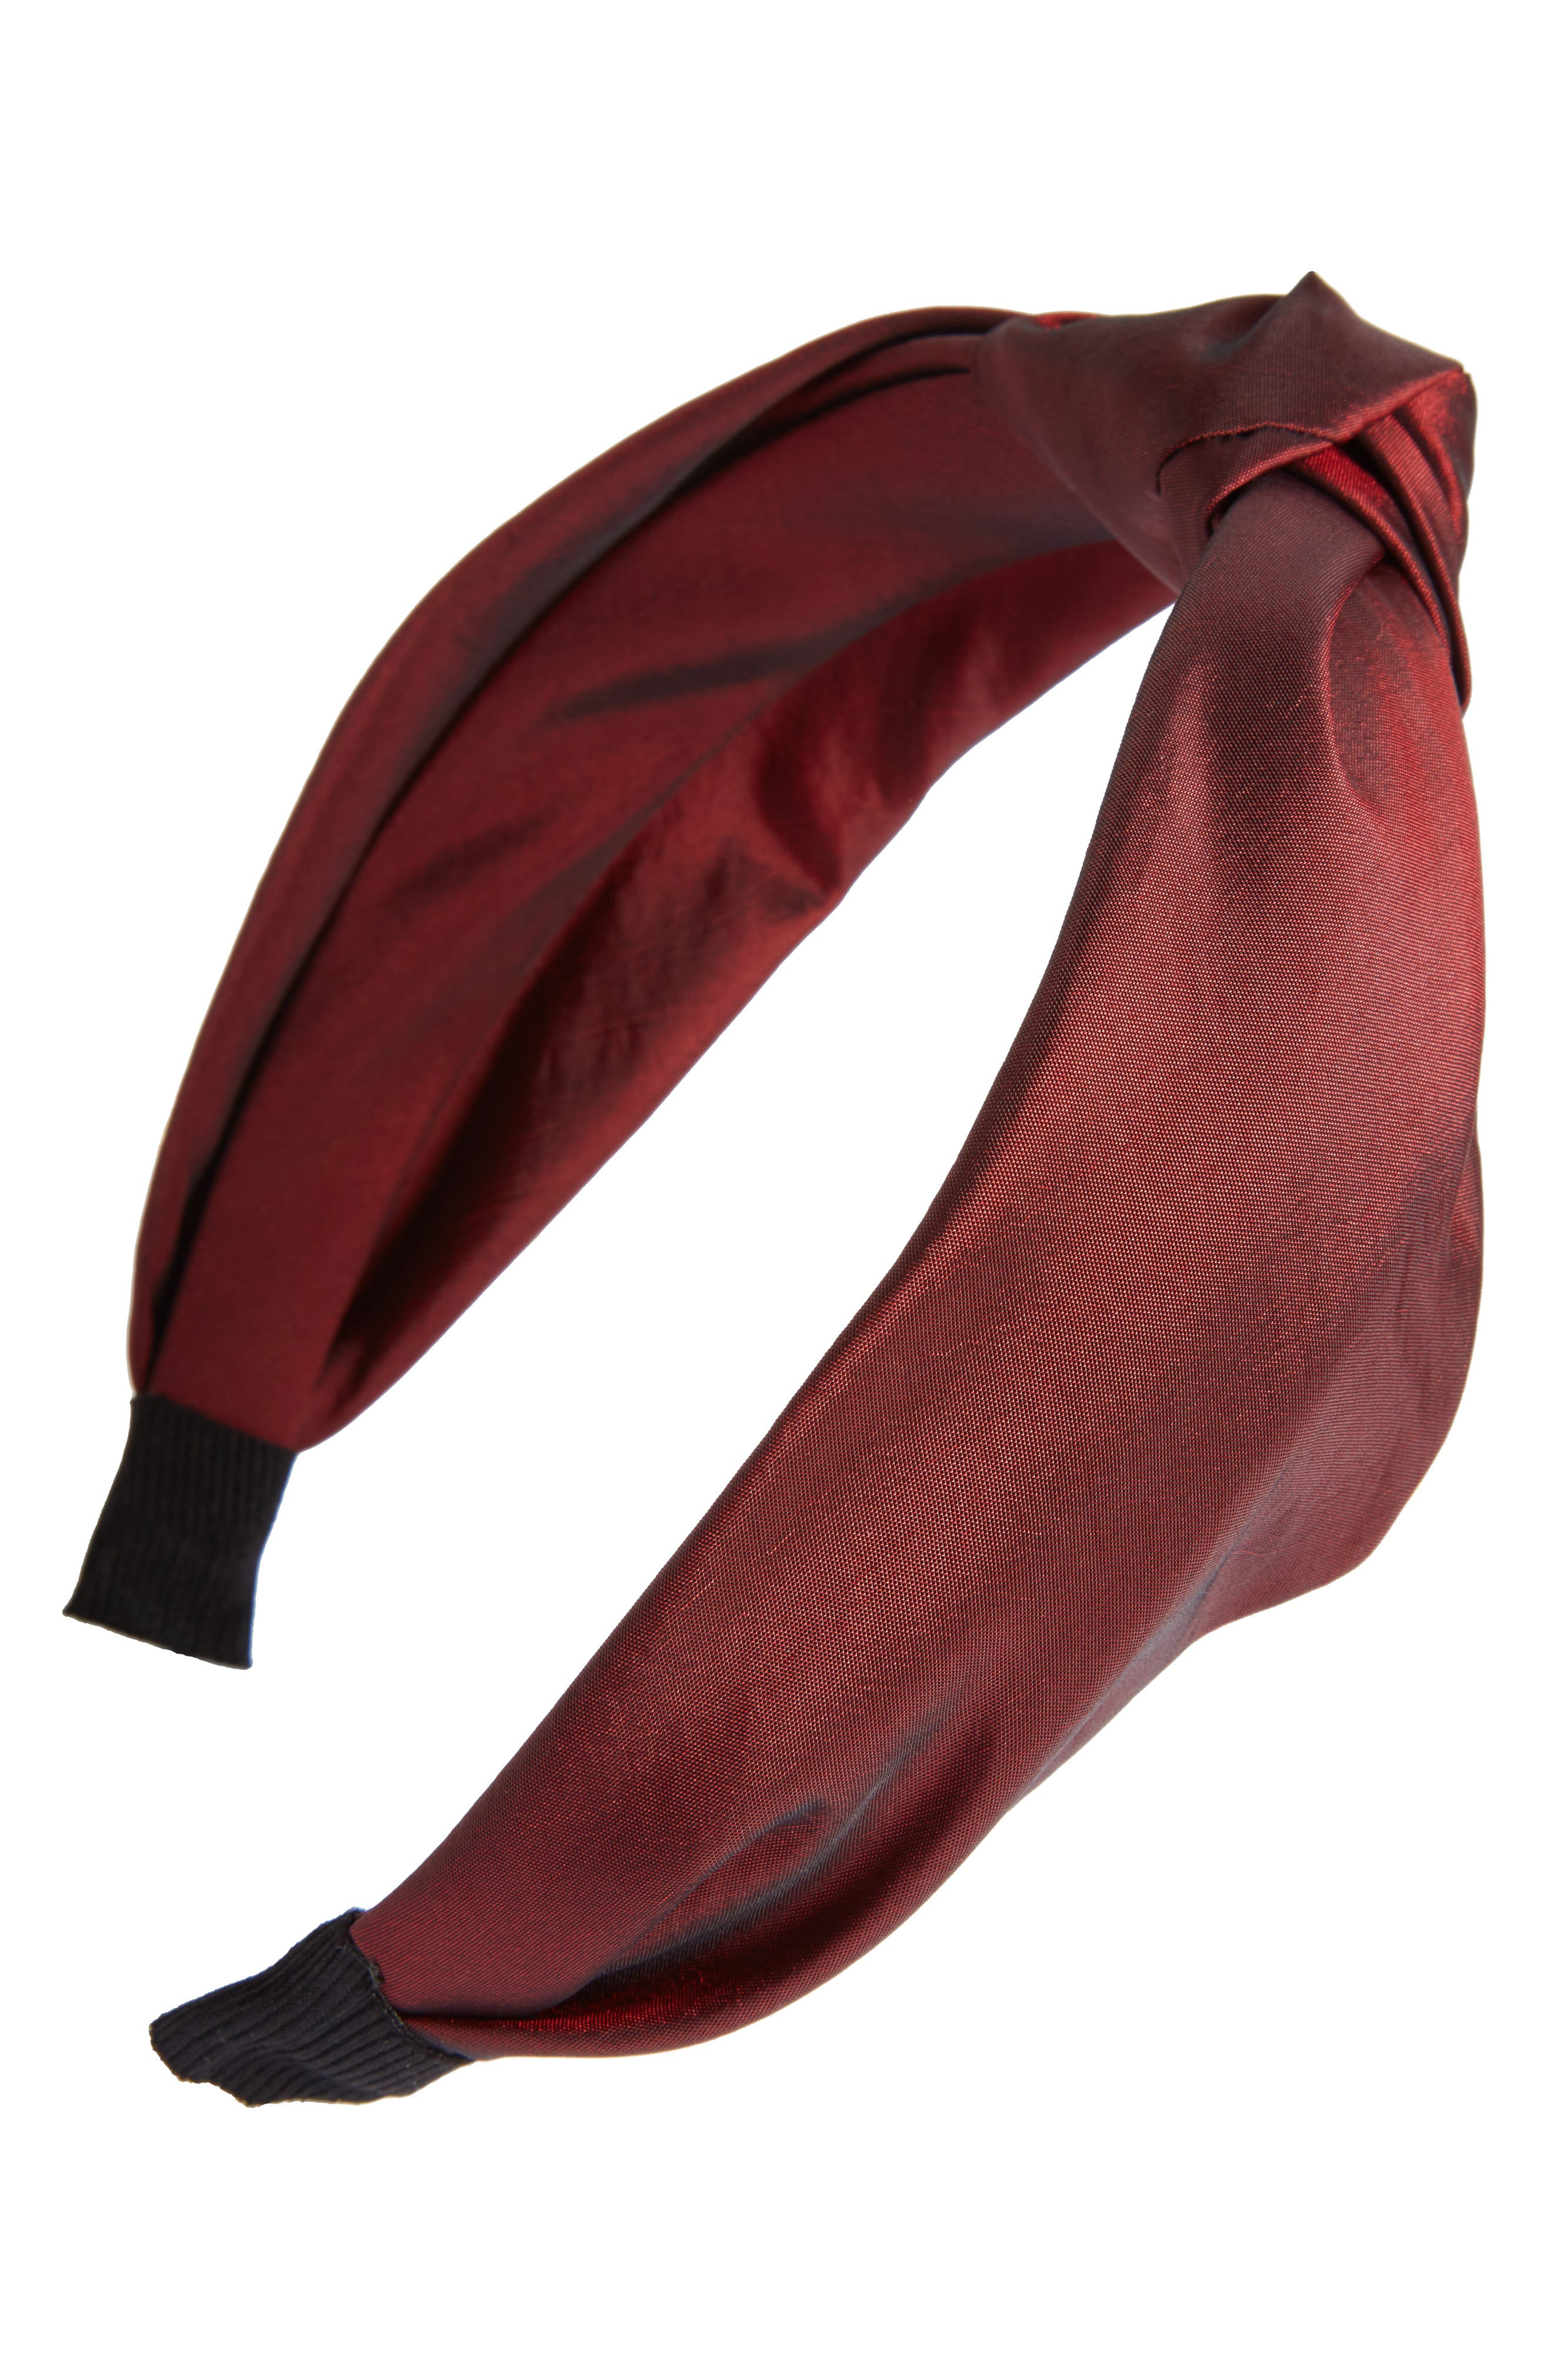 Knotted Taffeta Headband,                         Main,                         color, Burgundy